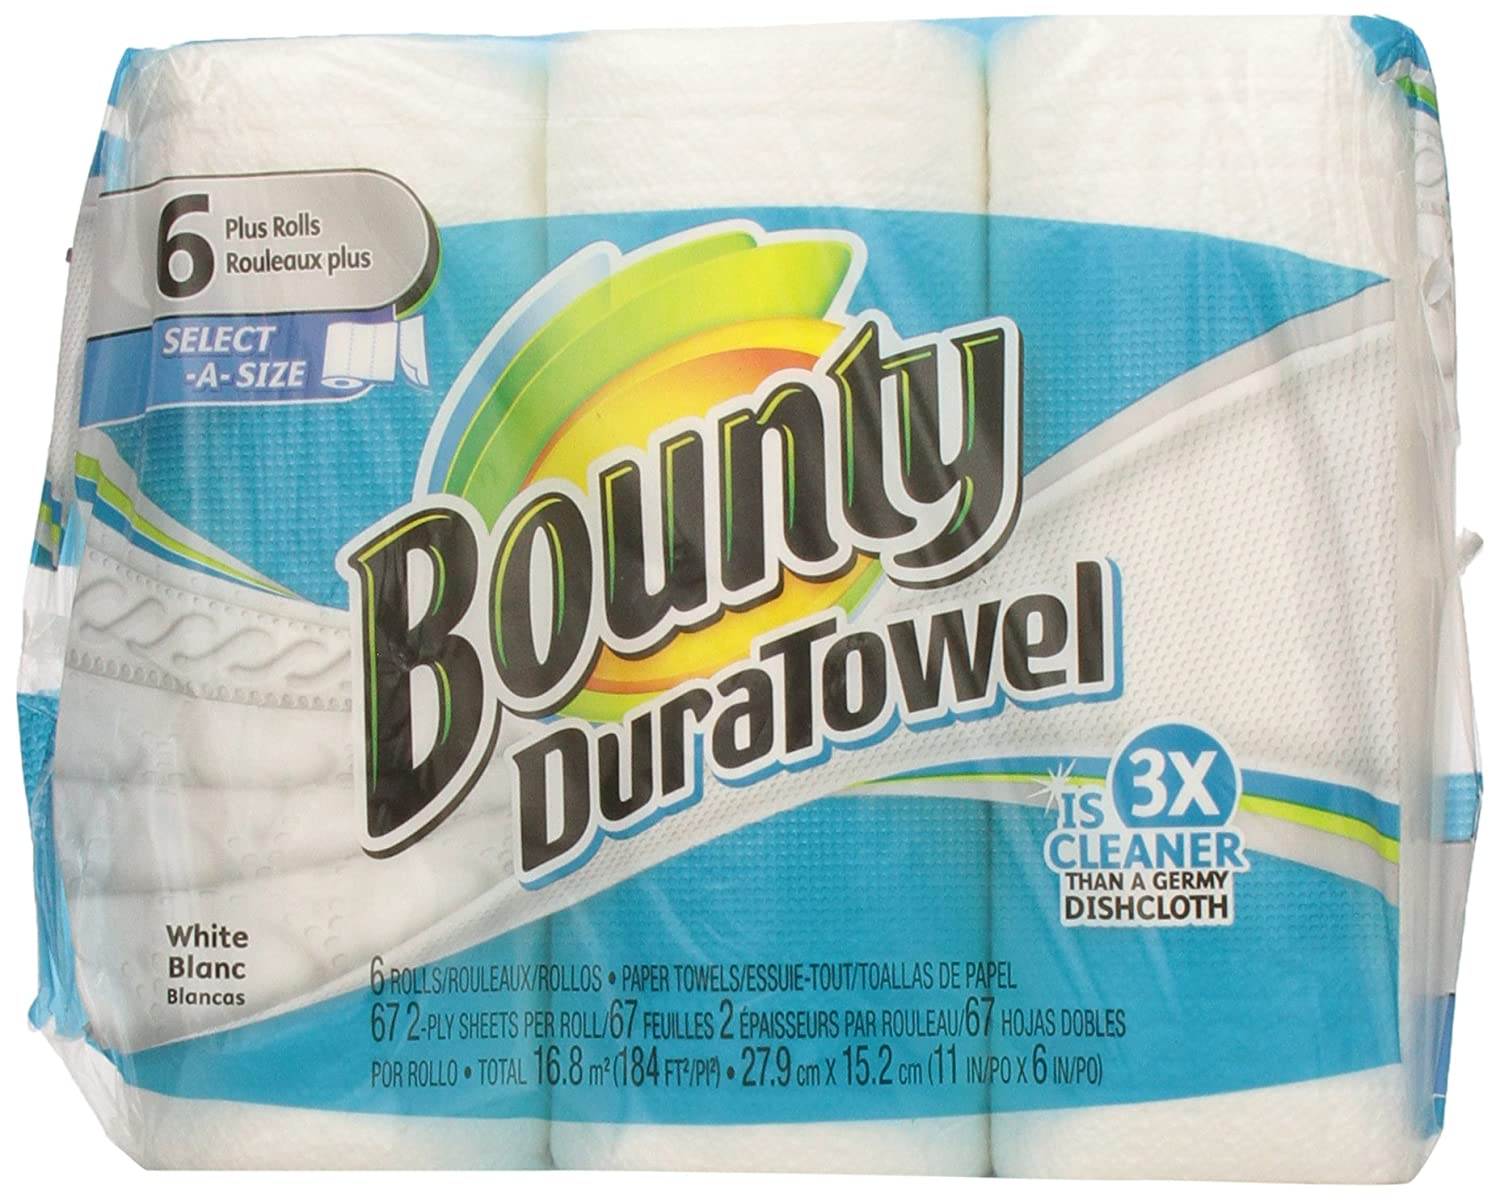 Amazon.com: Bounty Duratwl Rl-Twl 2Ply Whi Sas 1/6 Pack 67 S: Health & Personal Care